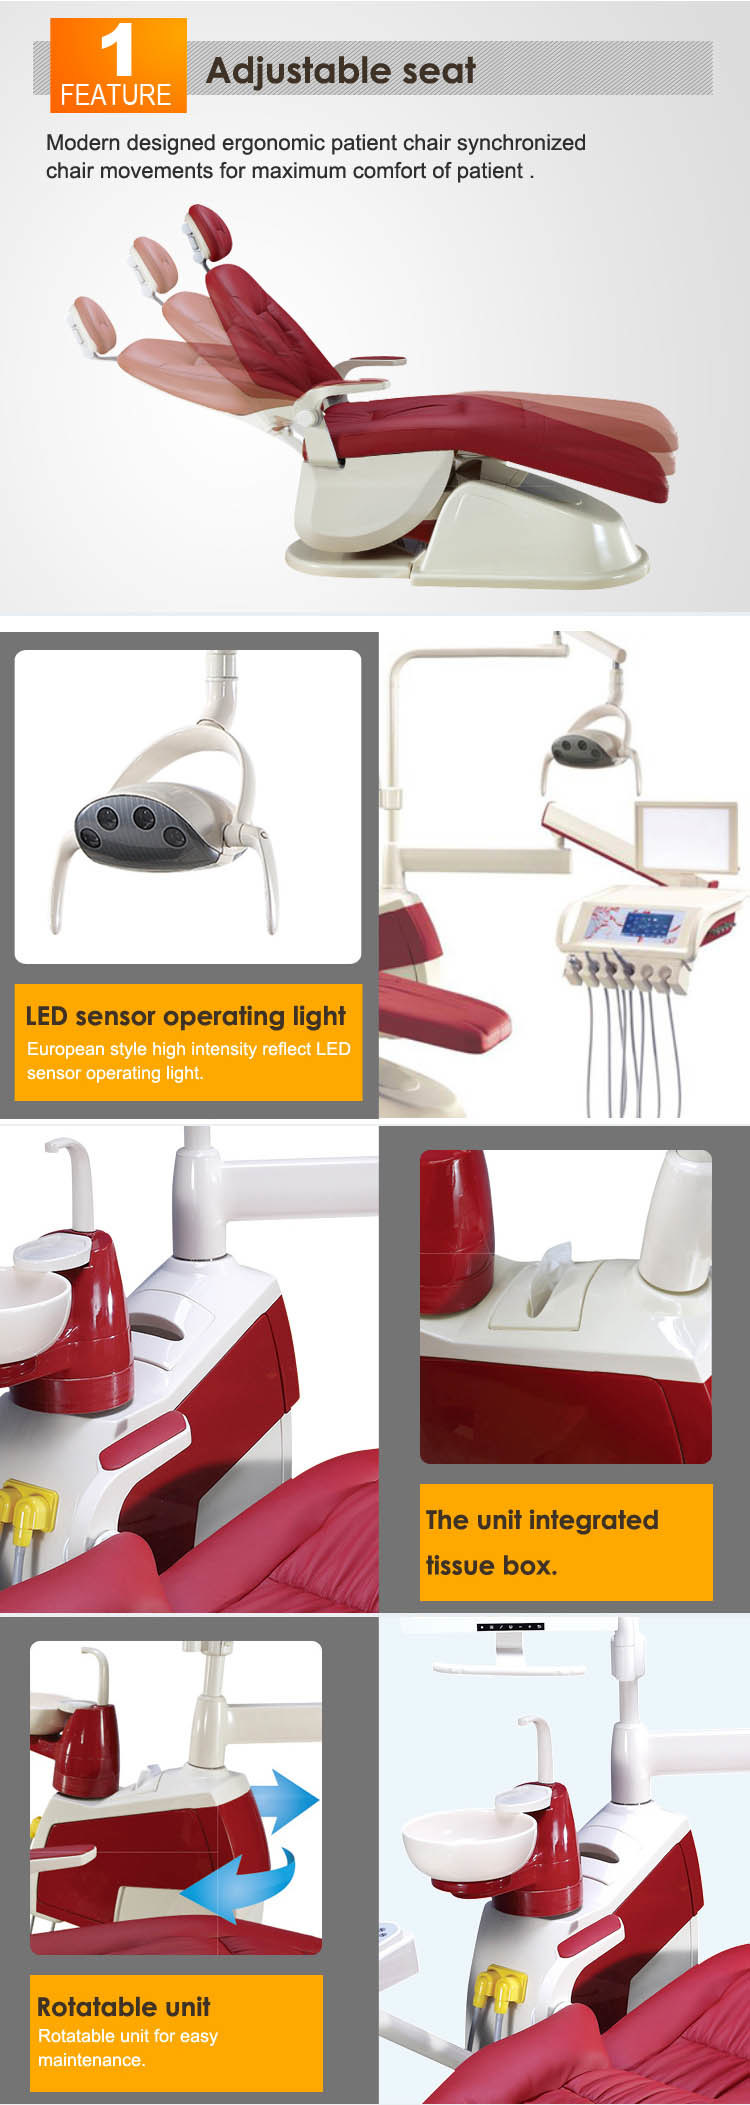 High Quality FDA Approved Dental Chair Dental Chair Suppliers/Dental Stools for Sale/Dental Equipment Suppliers